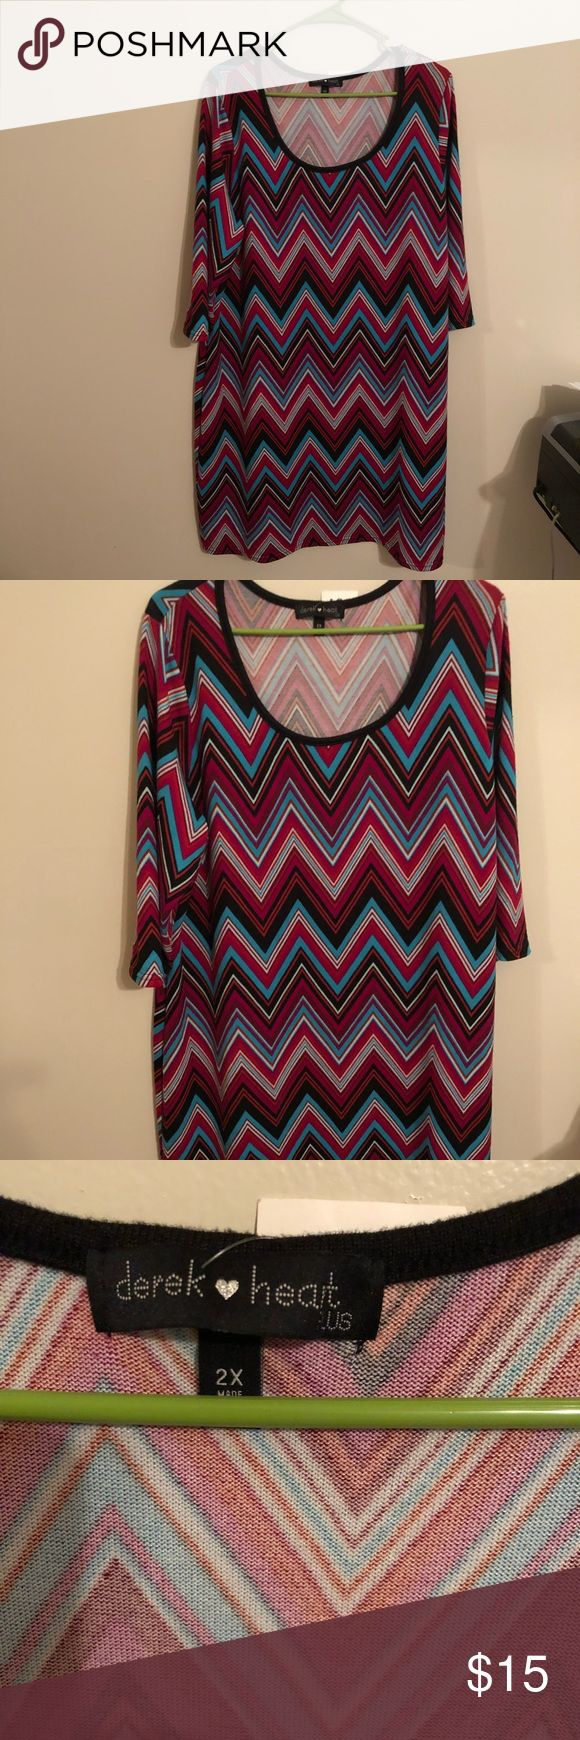 Multicolor Plus Size Dress Multicolored Aztec Print Dress. Great for office and a night out on the town! Dresses Midi